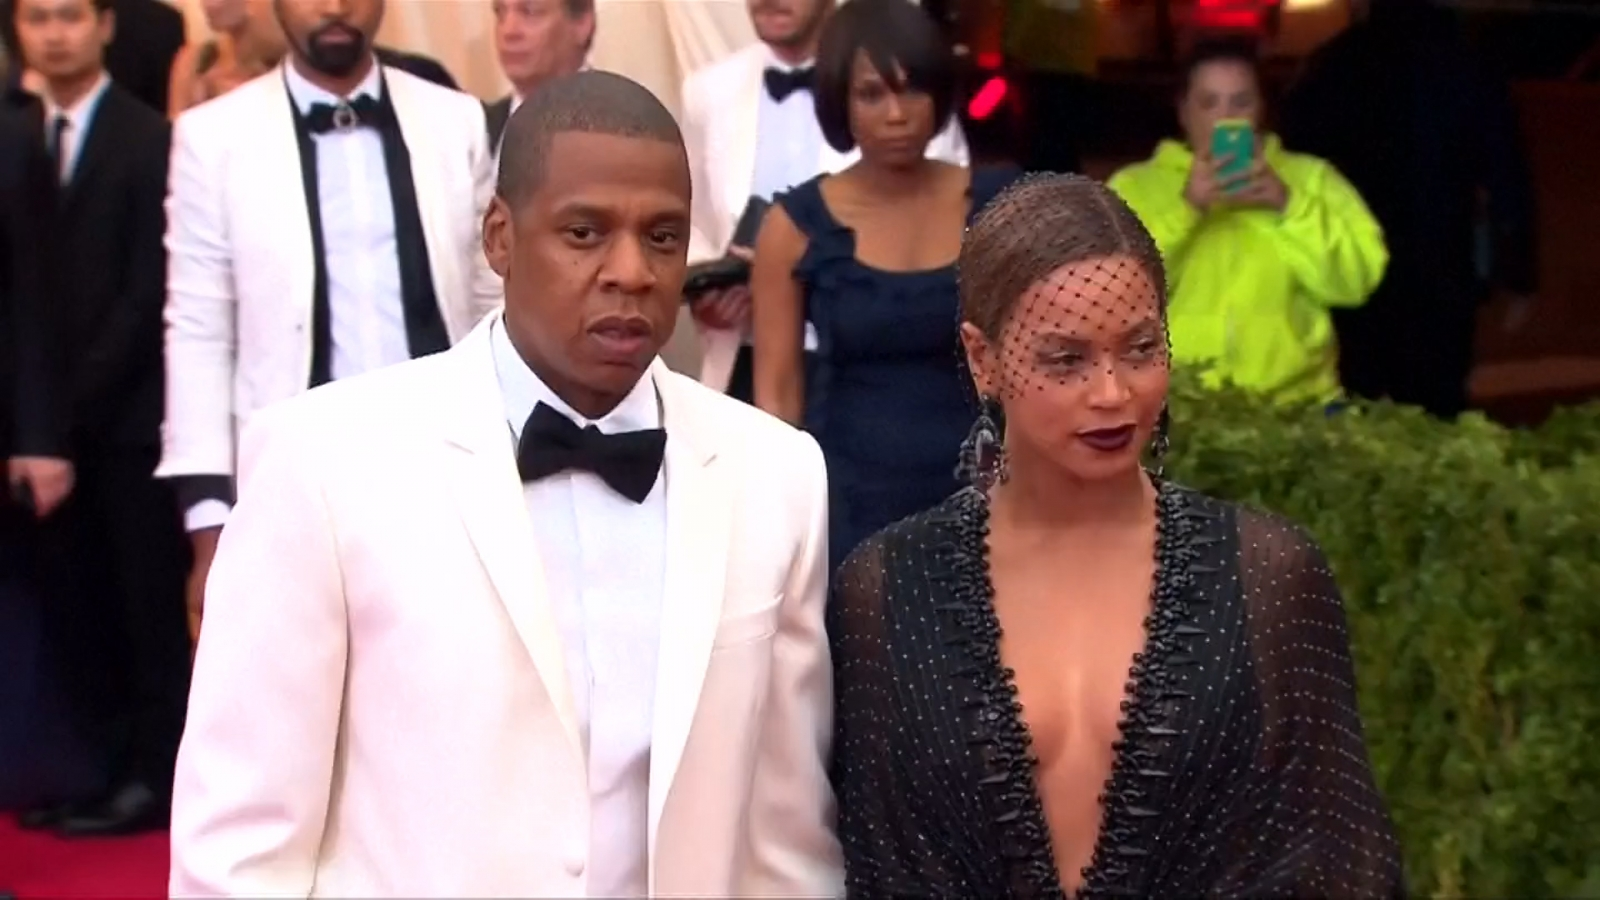 Beyonce and Jay Z twin names 'revealed'